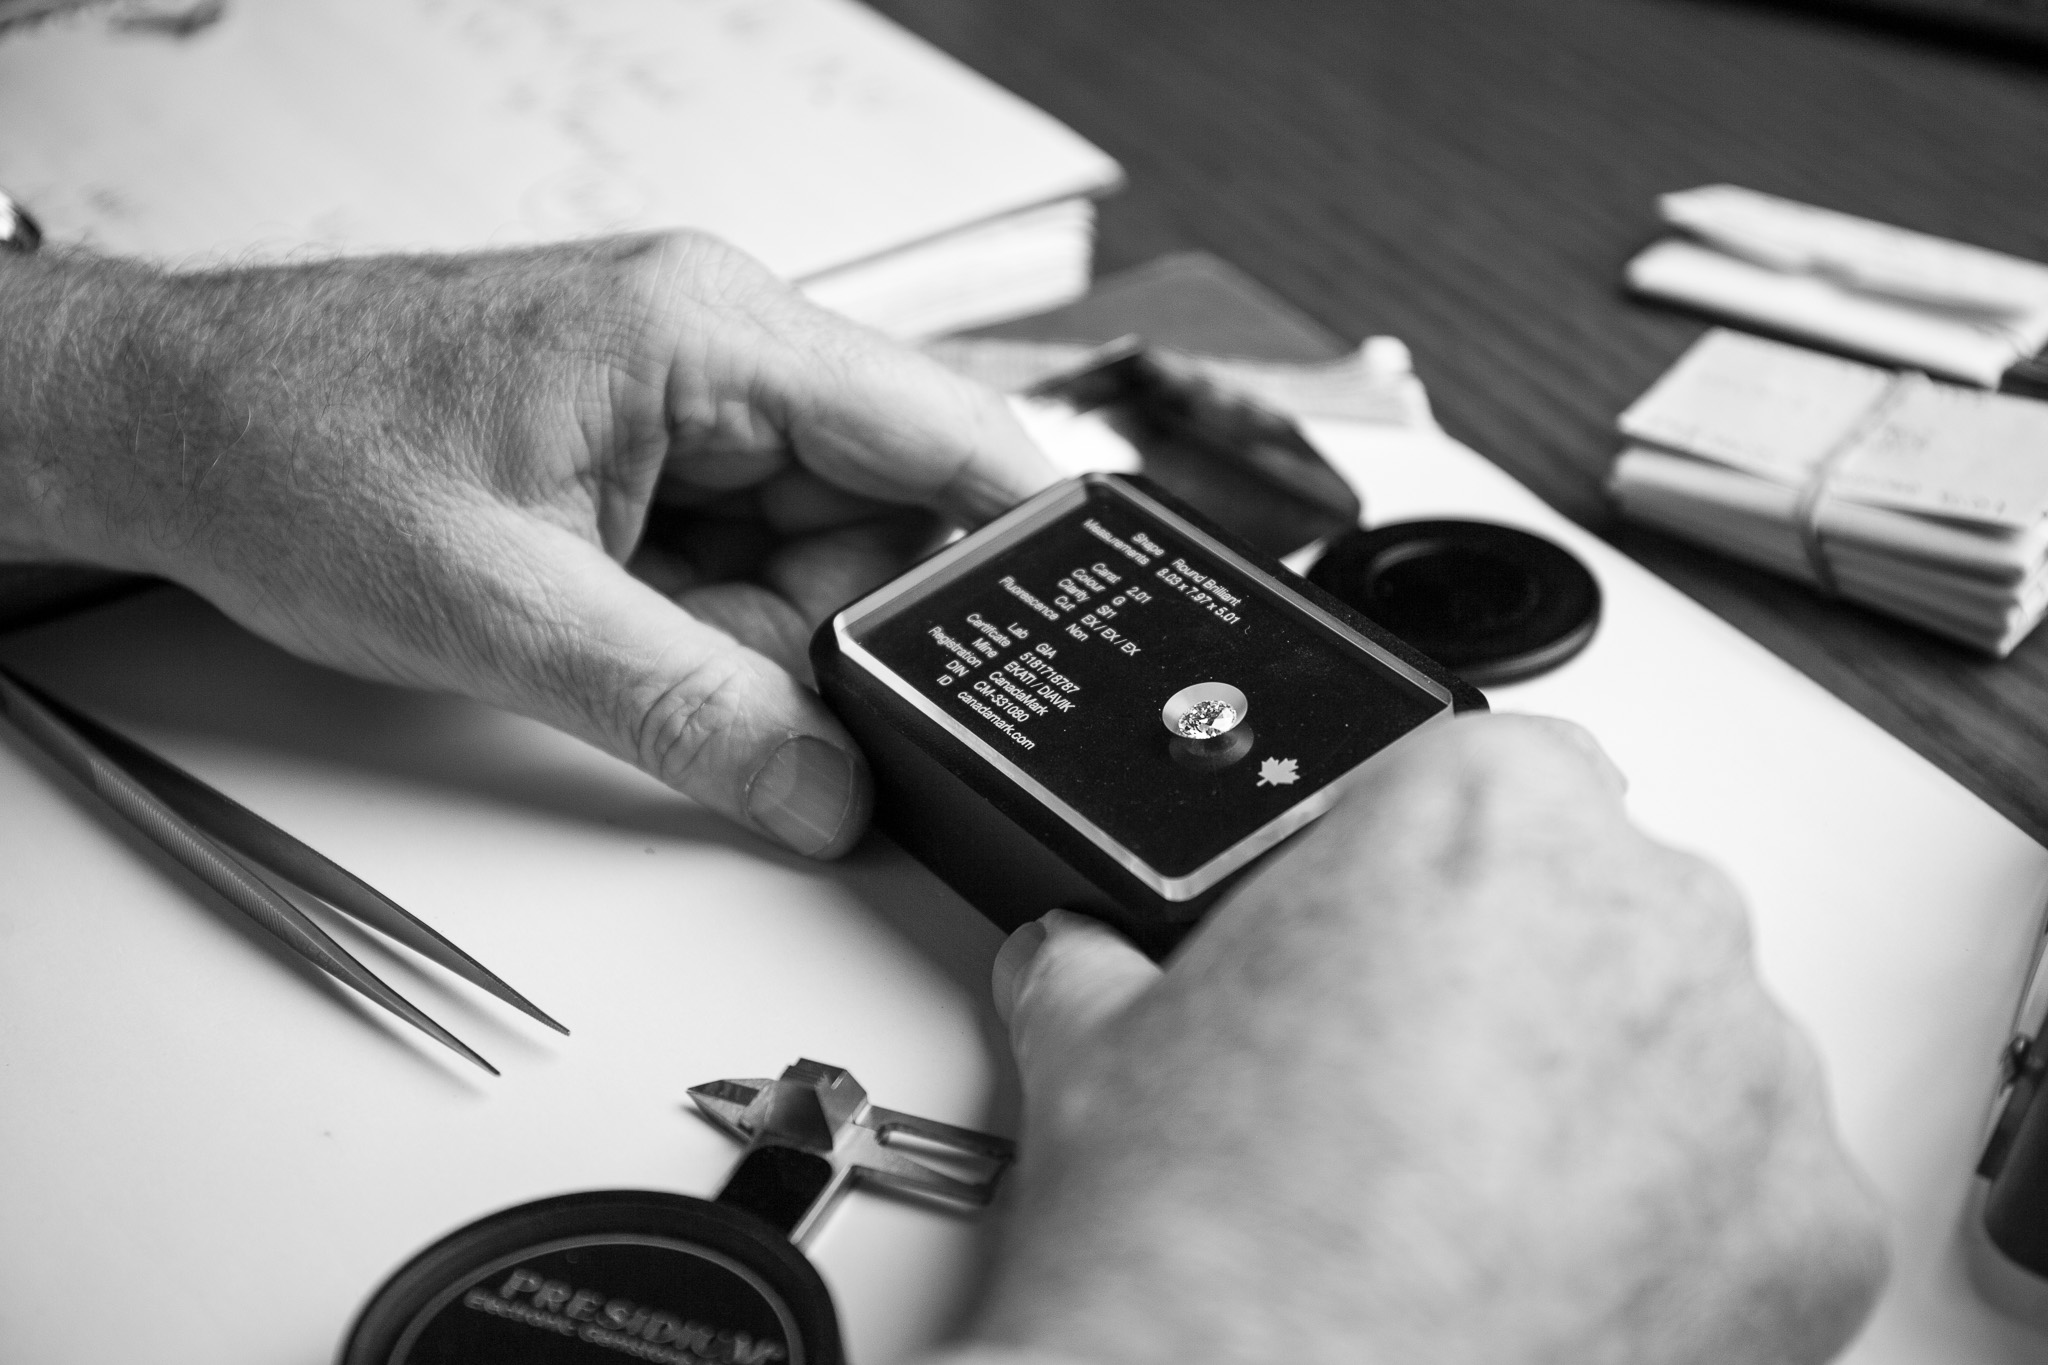 Sales Simplified - Spectacular beauty and certified grading information are keys to a persuasive presentation. The Authentication Plate System™ builds trust with your customer.Give your staff confidence in a sales environment, with a clear layout of the nuances of each diamond at hand.